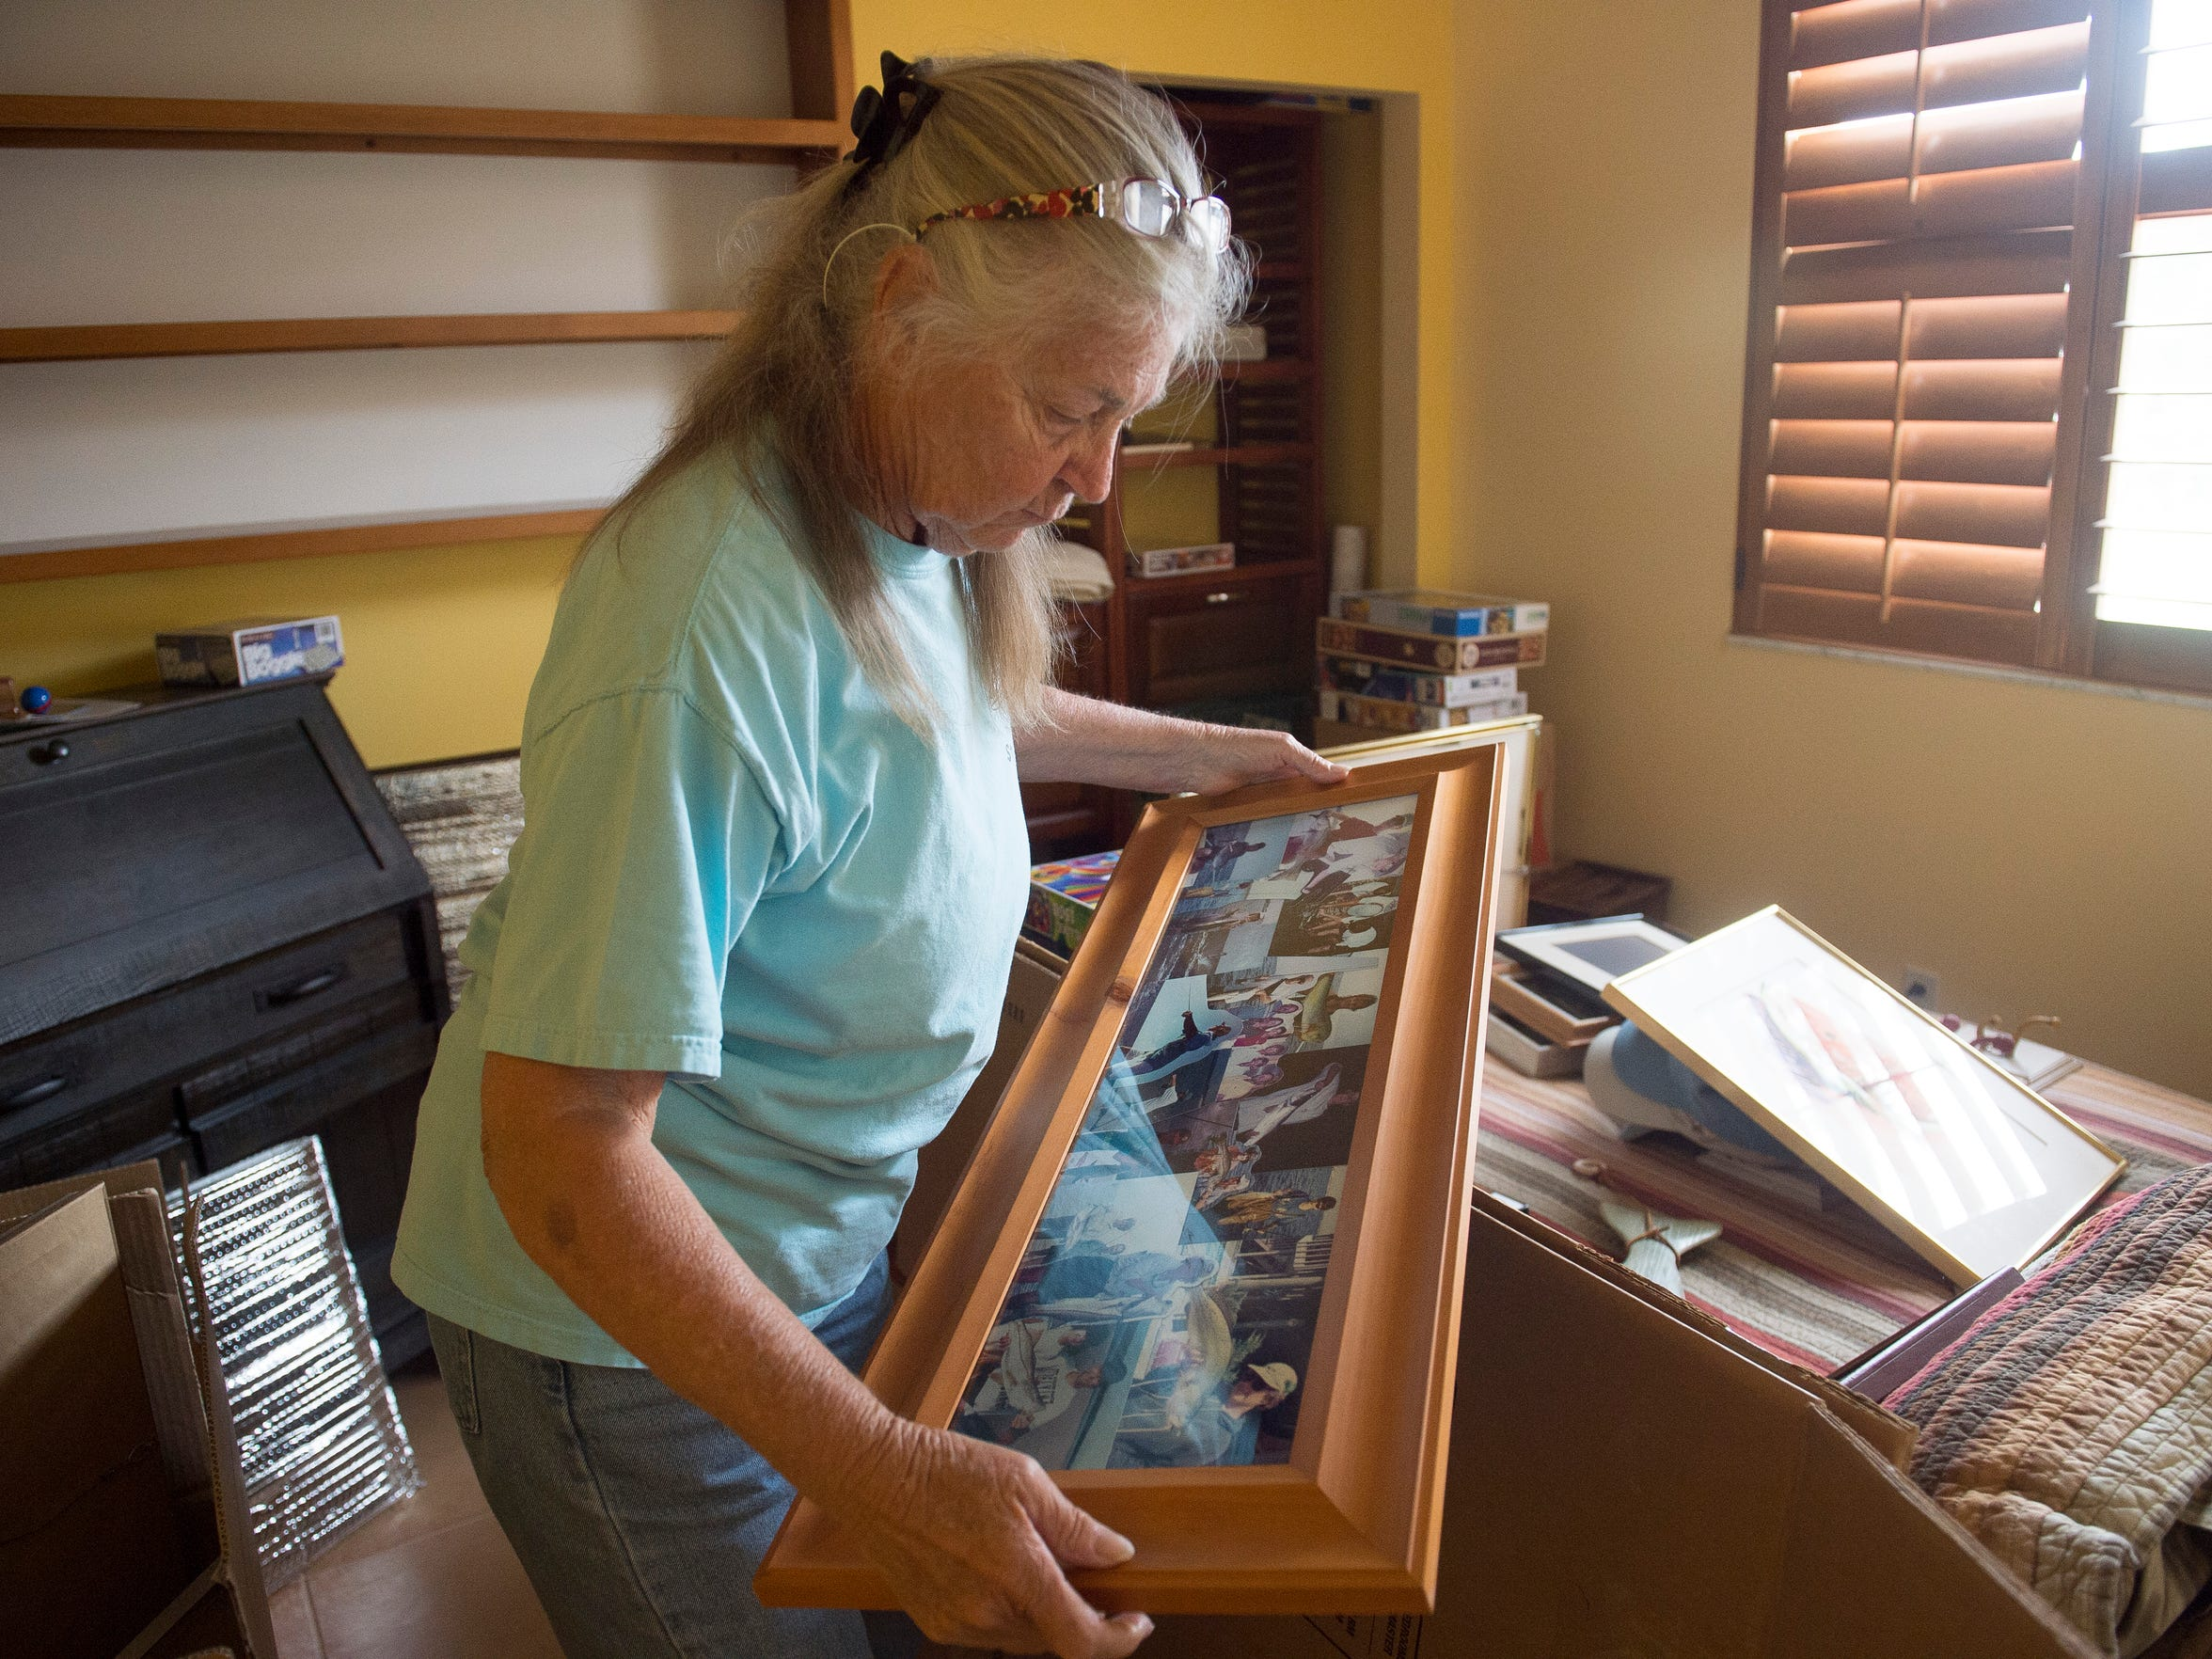 "Marcia Foosaner, a retired fishing guide, observes old images of her fishing with relatives and clients May 29 at her home in Palm City. ""I've got tons of these. They're everywhere. And they'll move, they'll go to the new house and I'll be able to look at them there and enjoy them,"" Foosaner said, as she continued packing for her relocation Lake Placid for cleaner water."